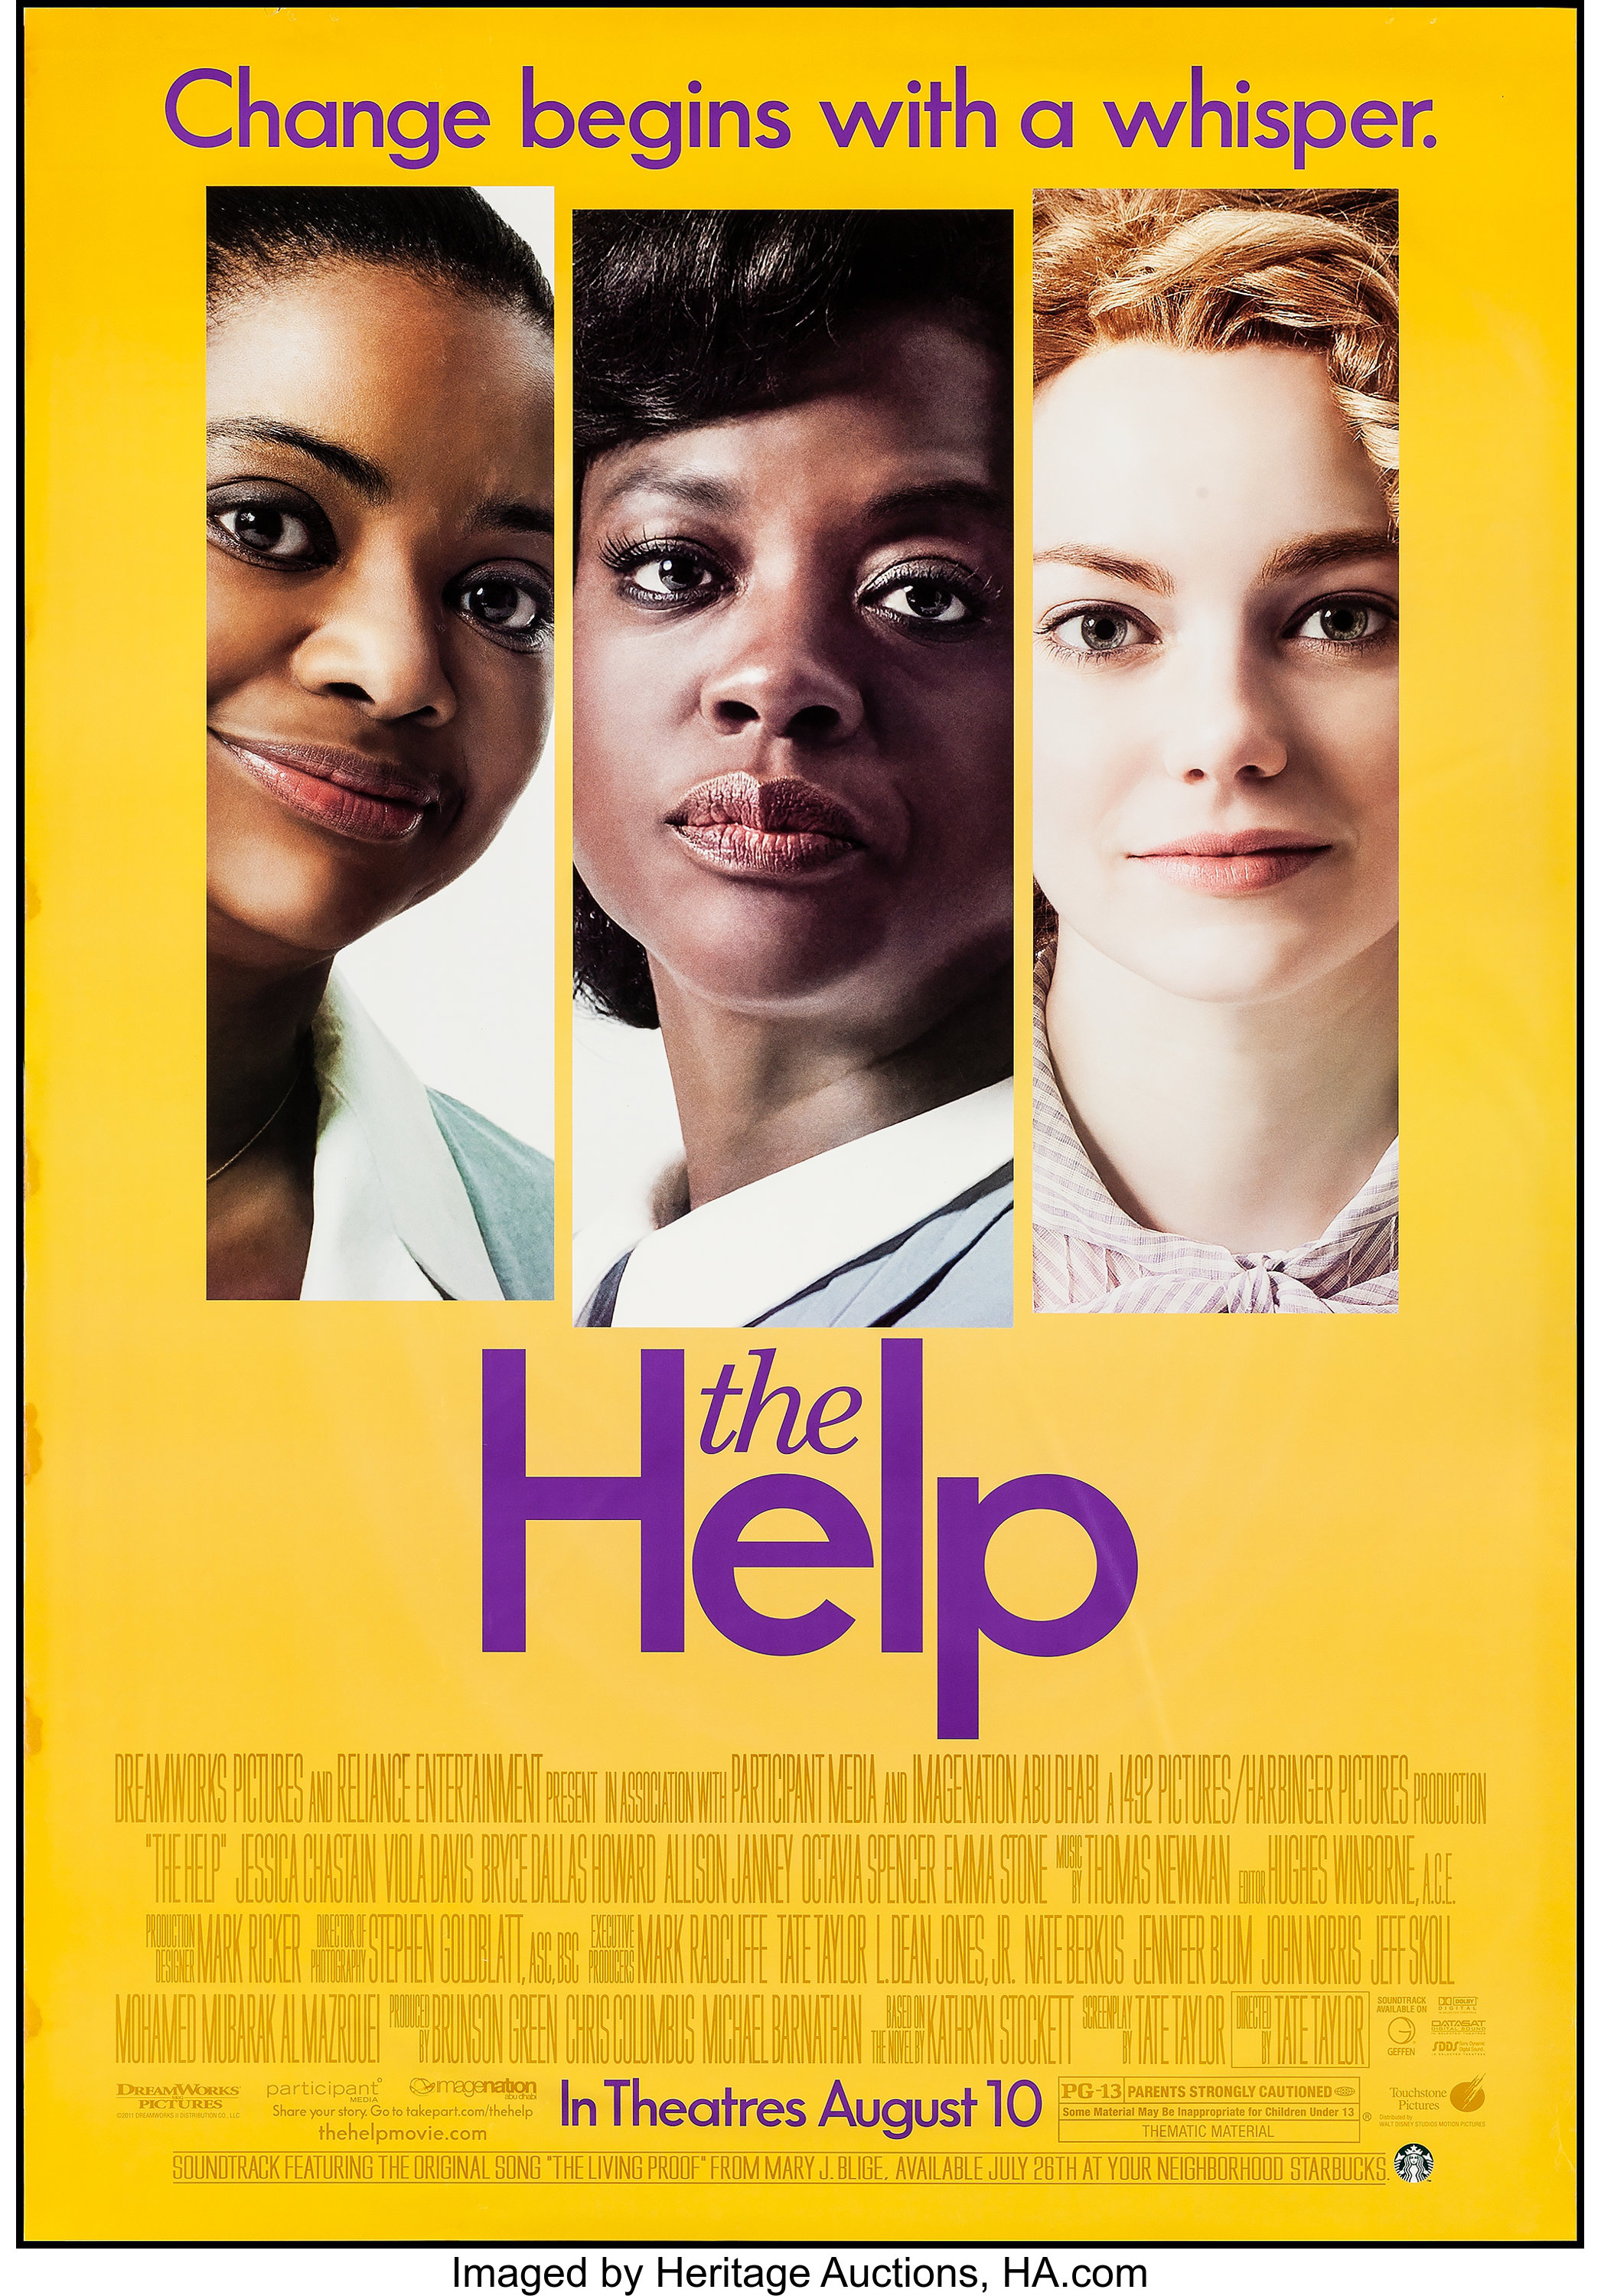 The Help Touchstone 2011 Subway 47 5 X 68 25 Ds Drama Lot 54182 Heritage Auctions